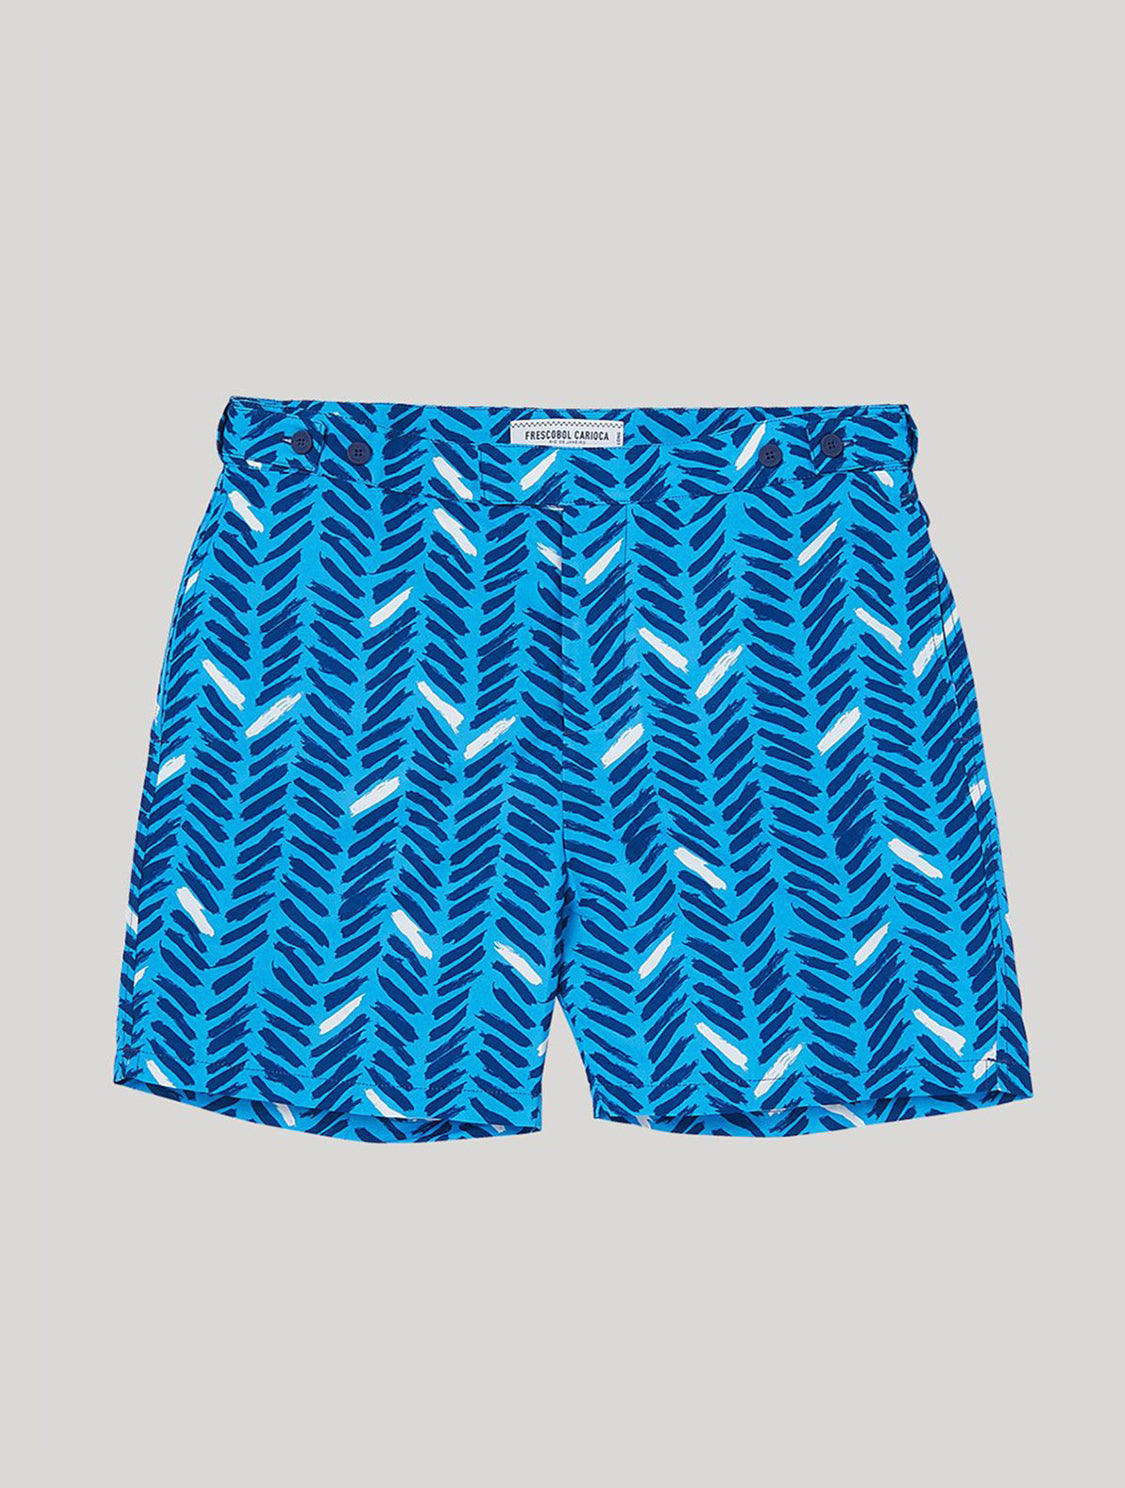 Pira Tailored Swim Shorts